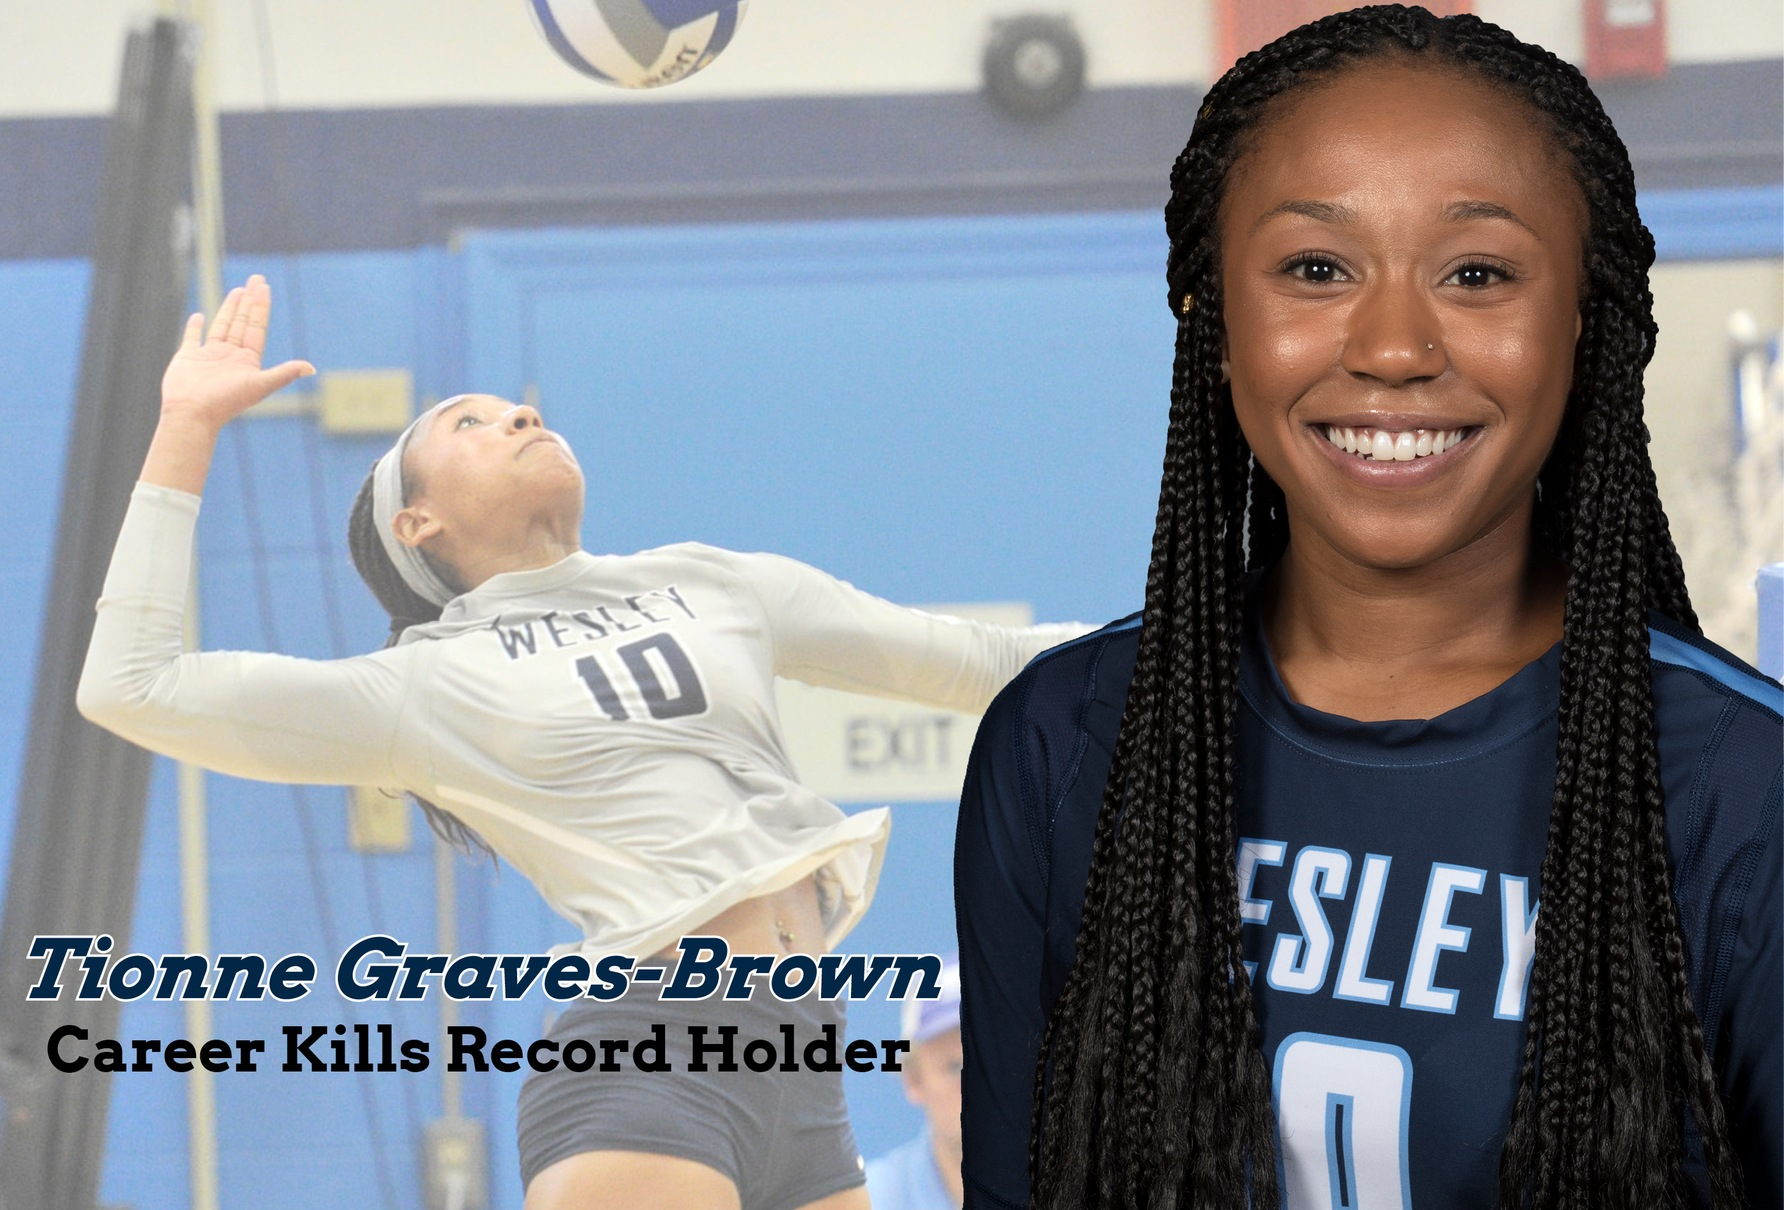 Graves-Brown sets kills record in sweep over Albright, Pitt-Greensburg